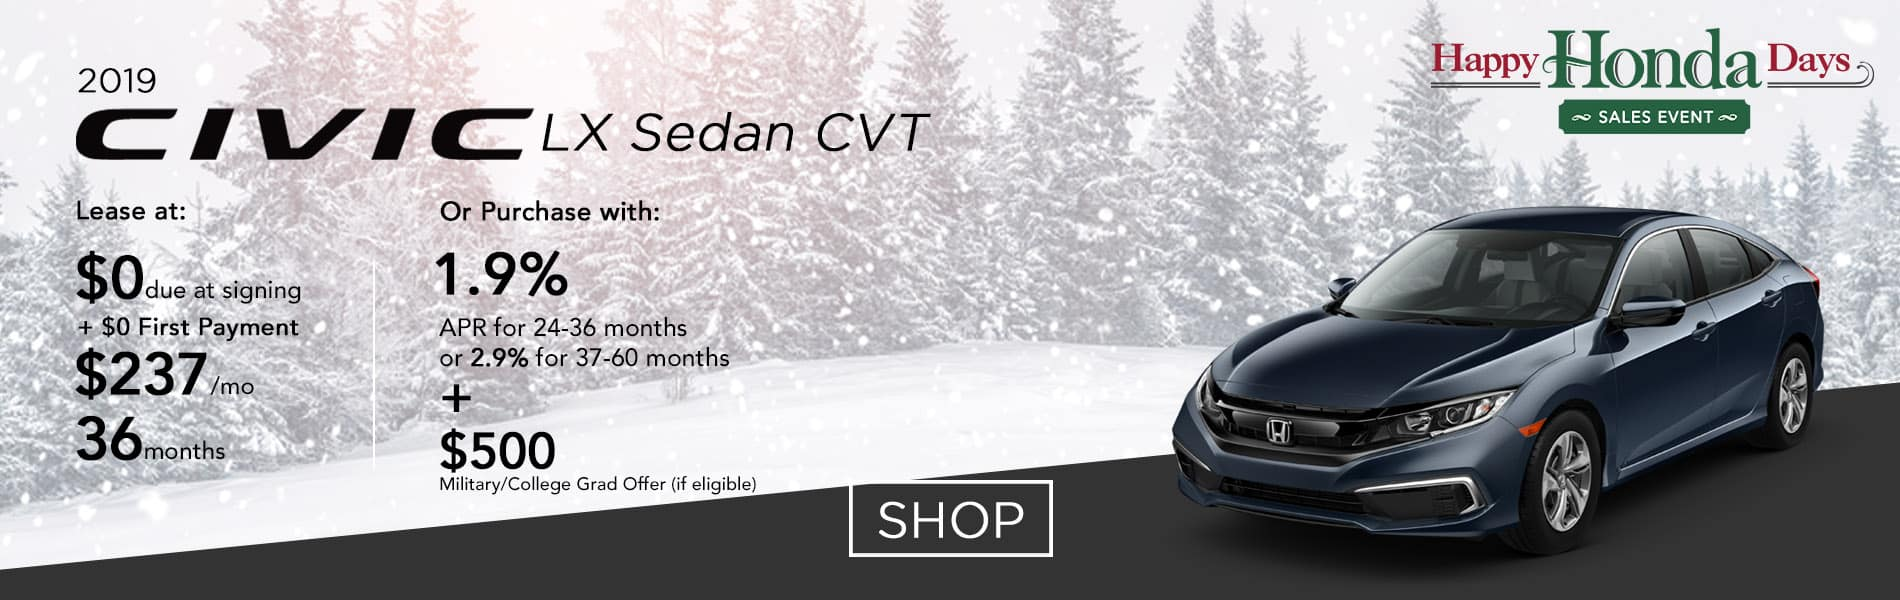 Lease a 2019 Civic LX Sedan CVT for $237 per month or purchase with 1.9% APR up to 36 months